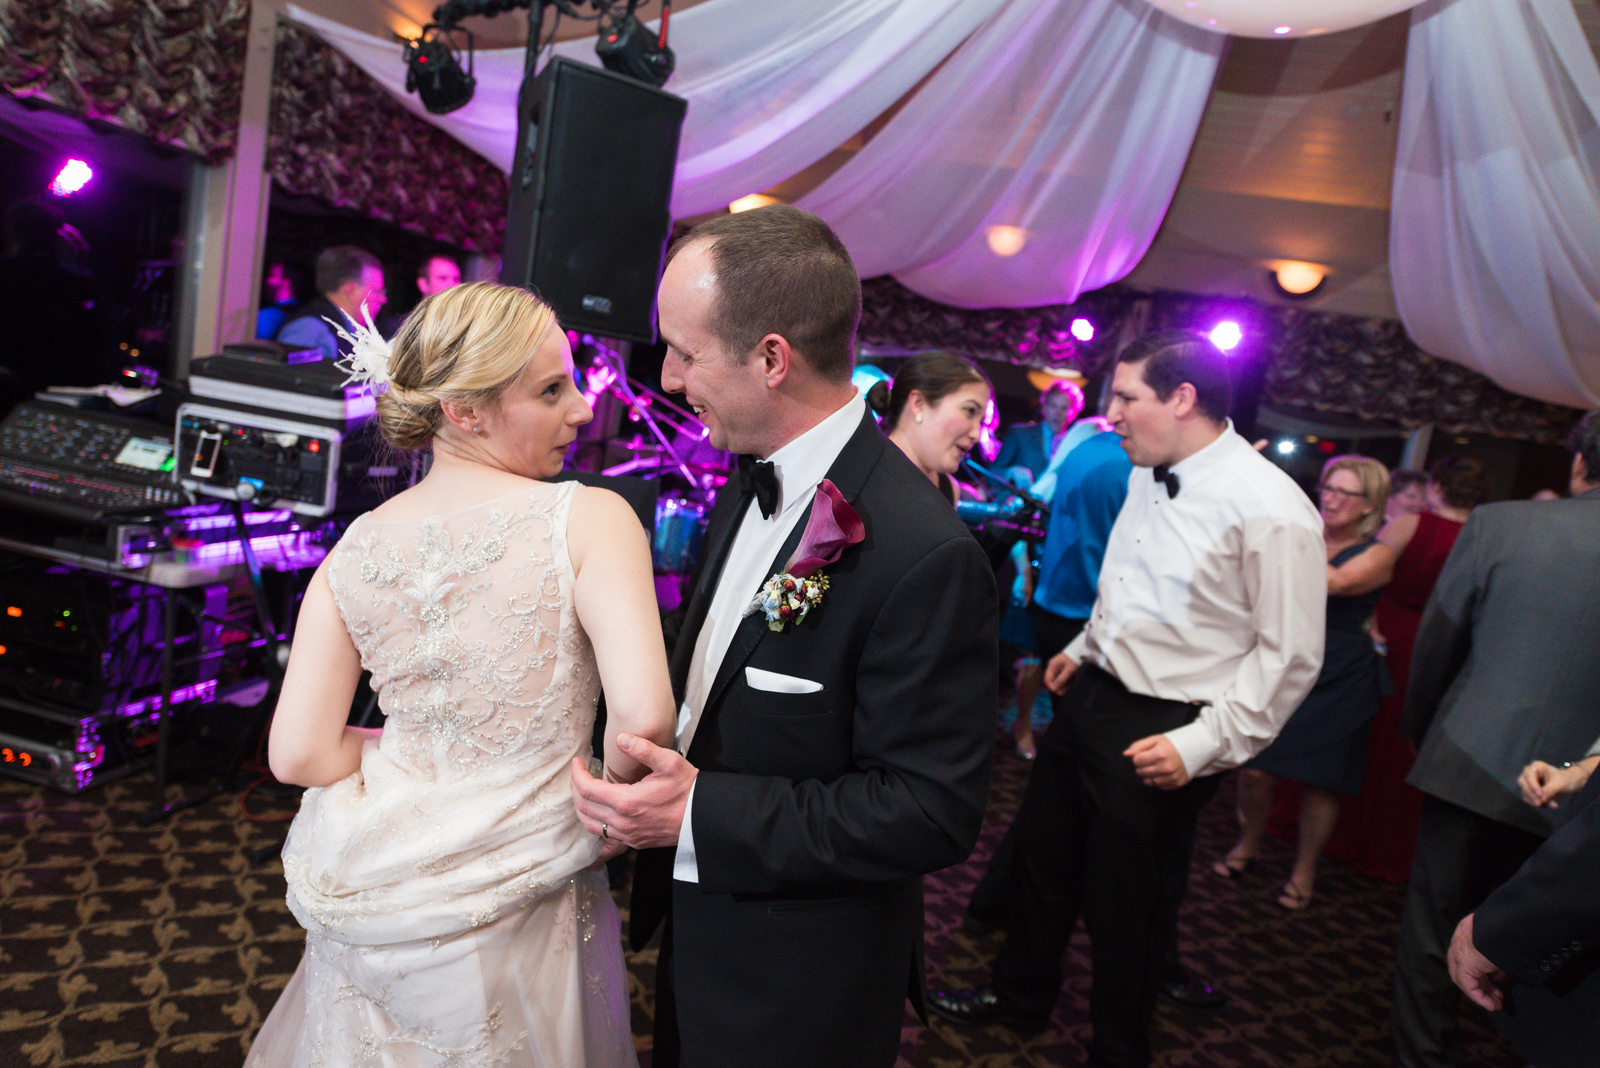 Scranton-clarks-summit-wedding-glen-oaks-contry-club-wedding-photographer-steven-serge-89.jpg